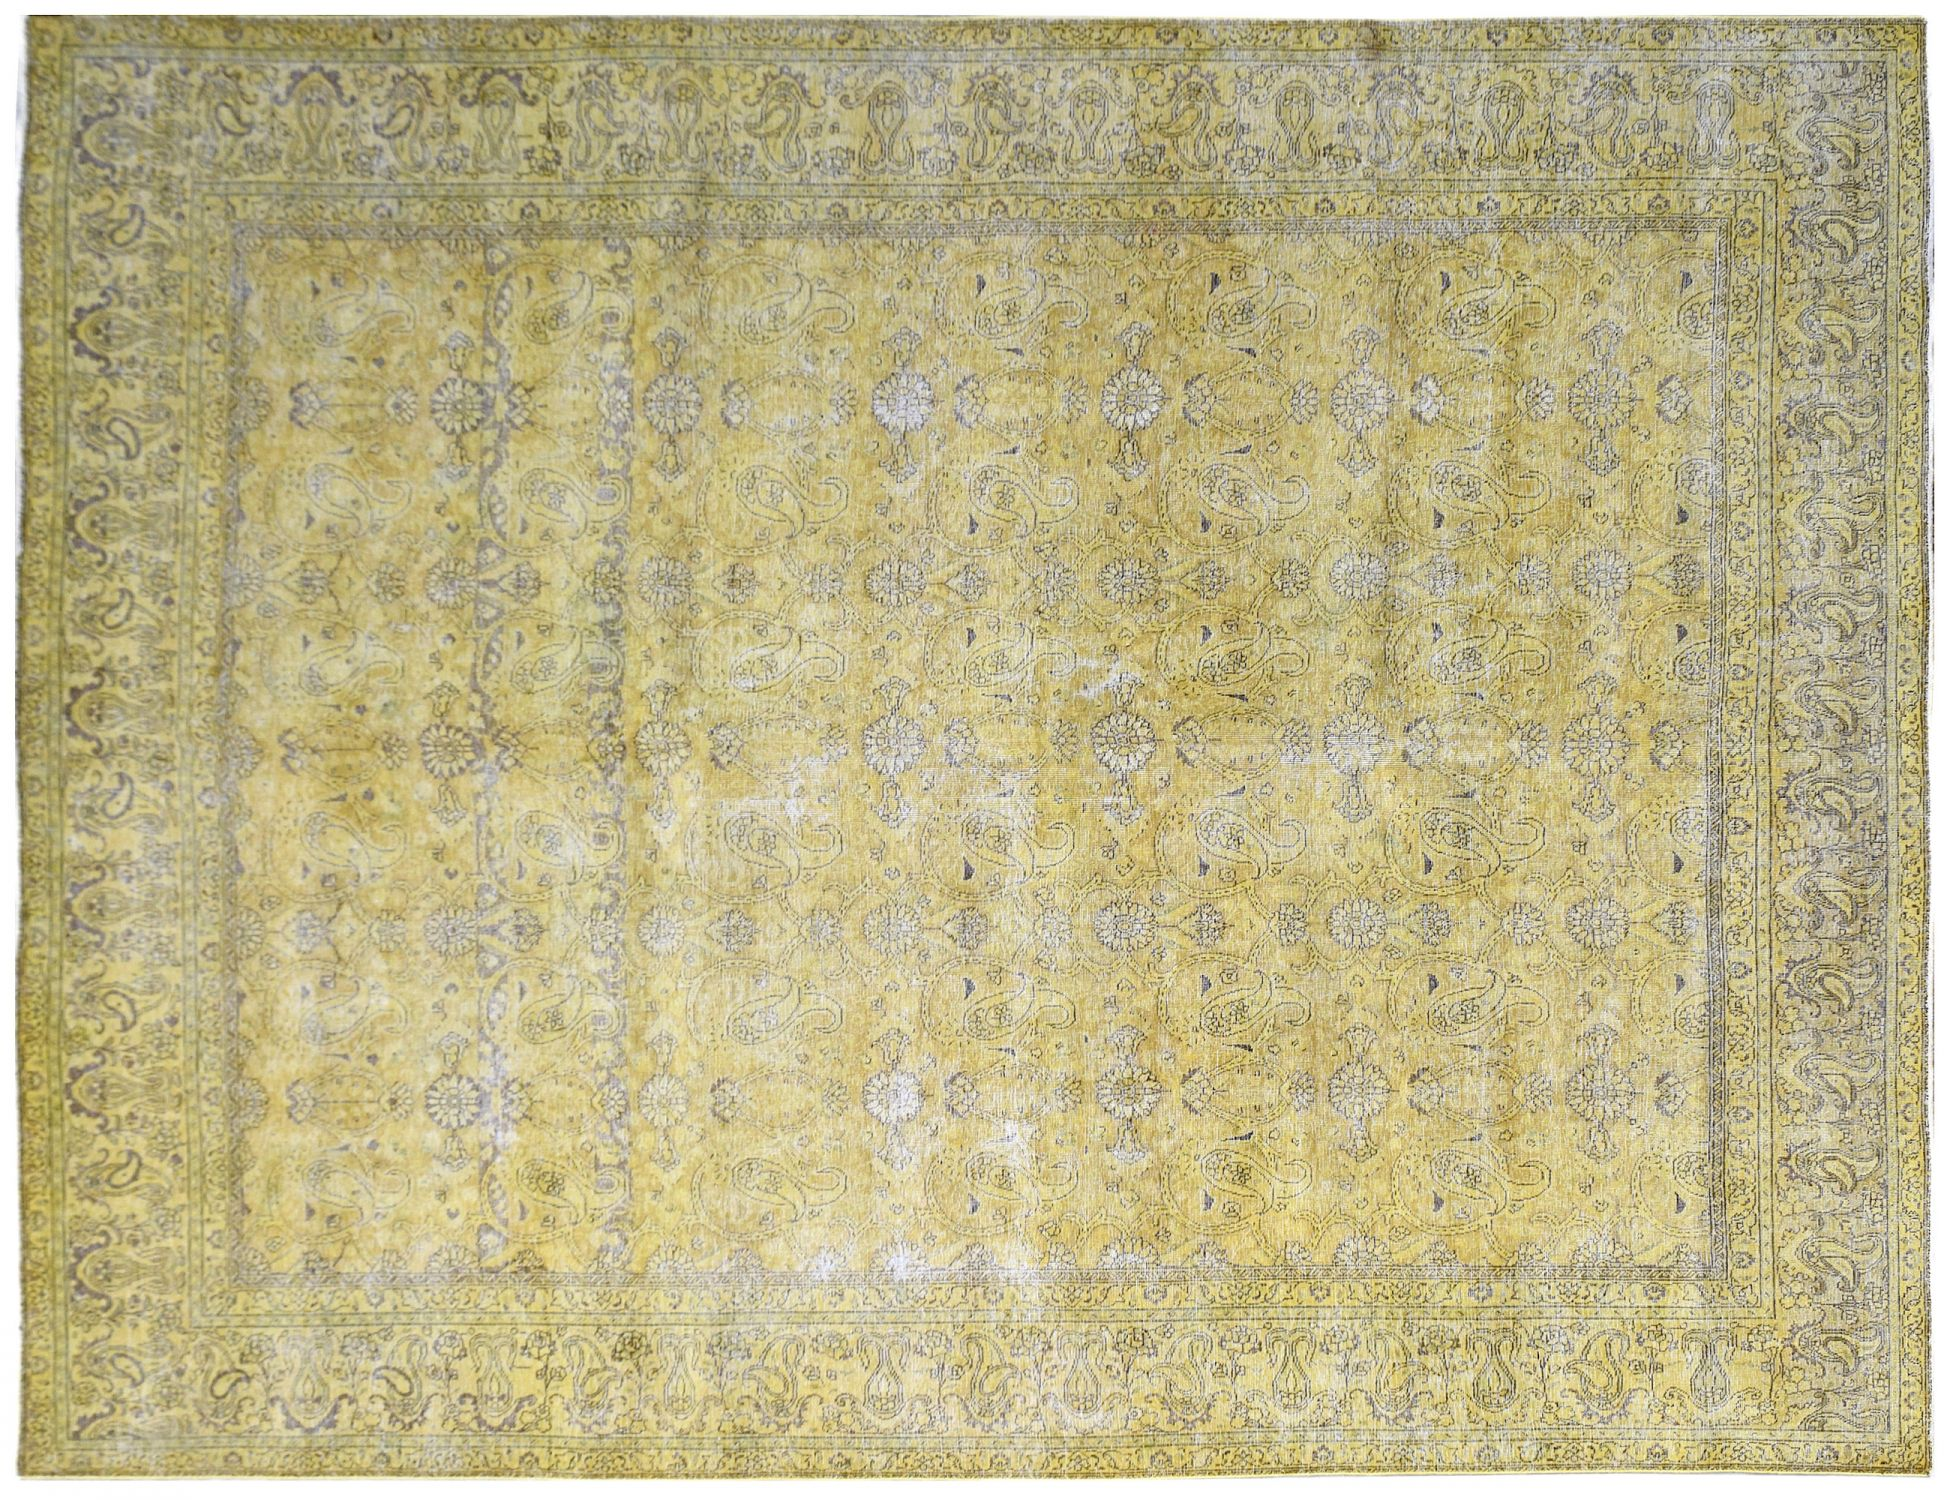 Vintage Carpet  yellow <br/>387 x 284 cm